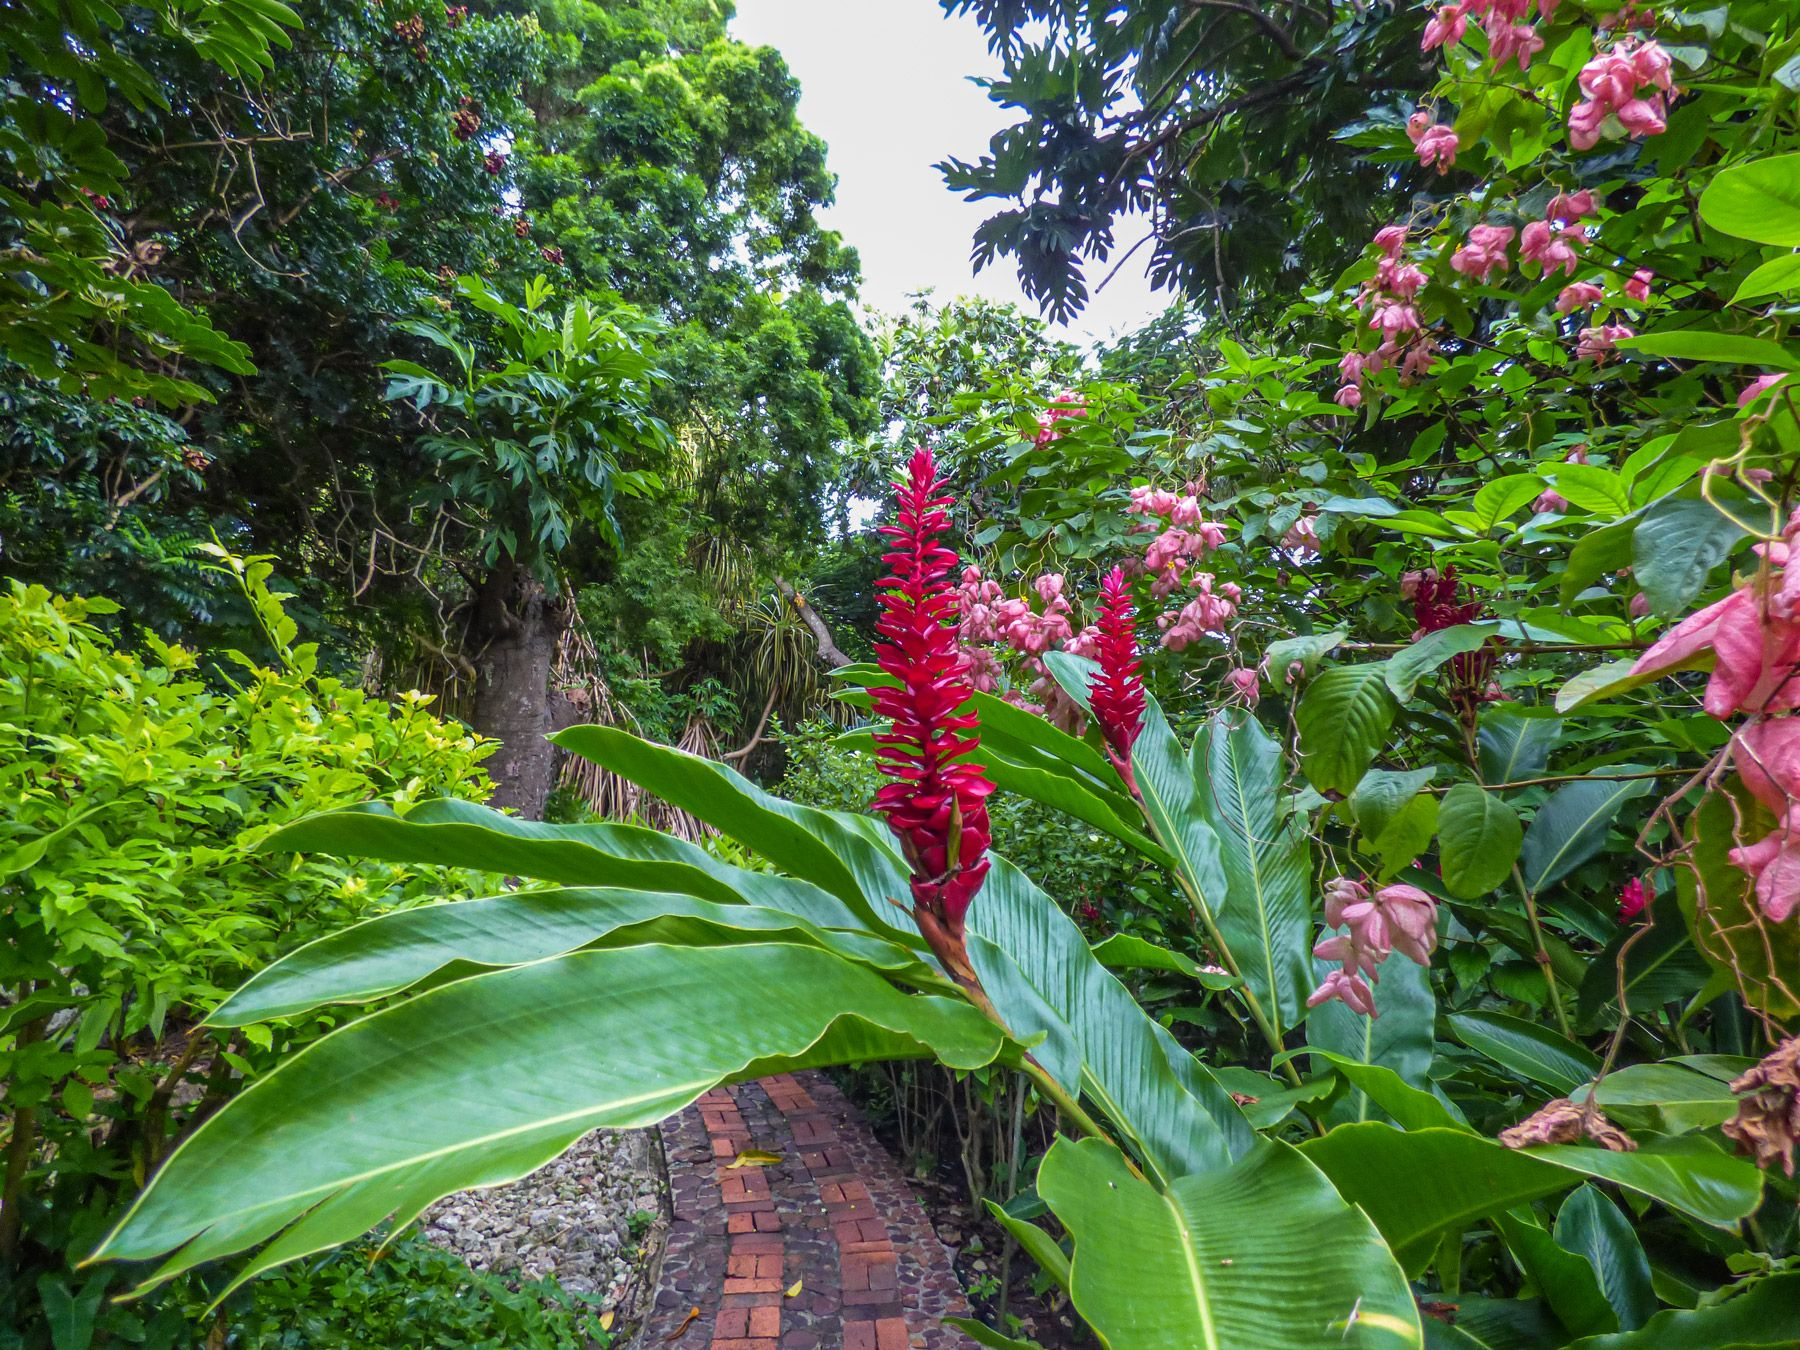 Andromedas Botanic Garden trail sorrounded by tropical flowers and trees